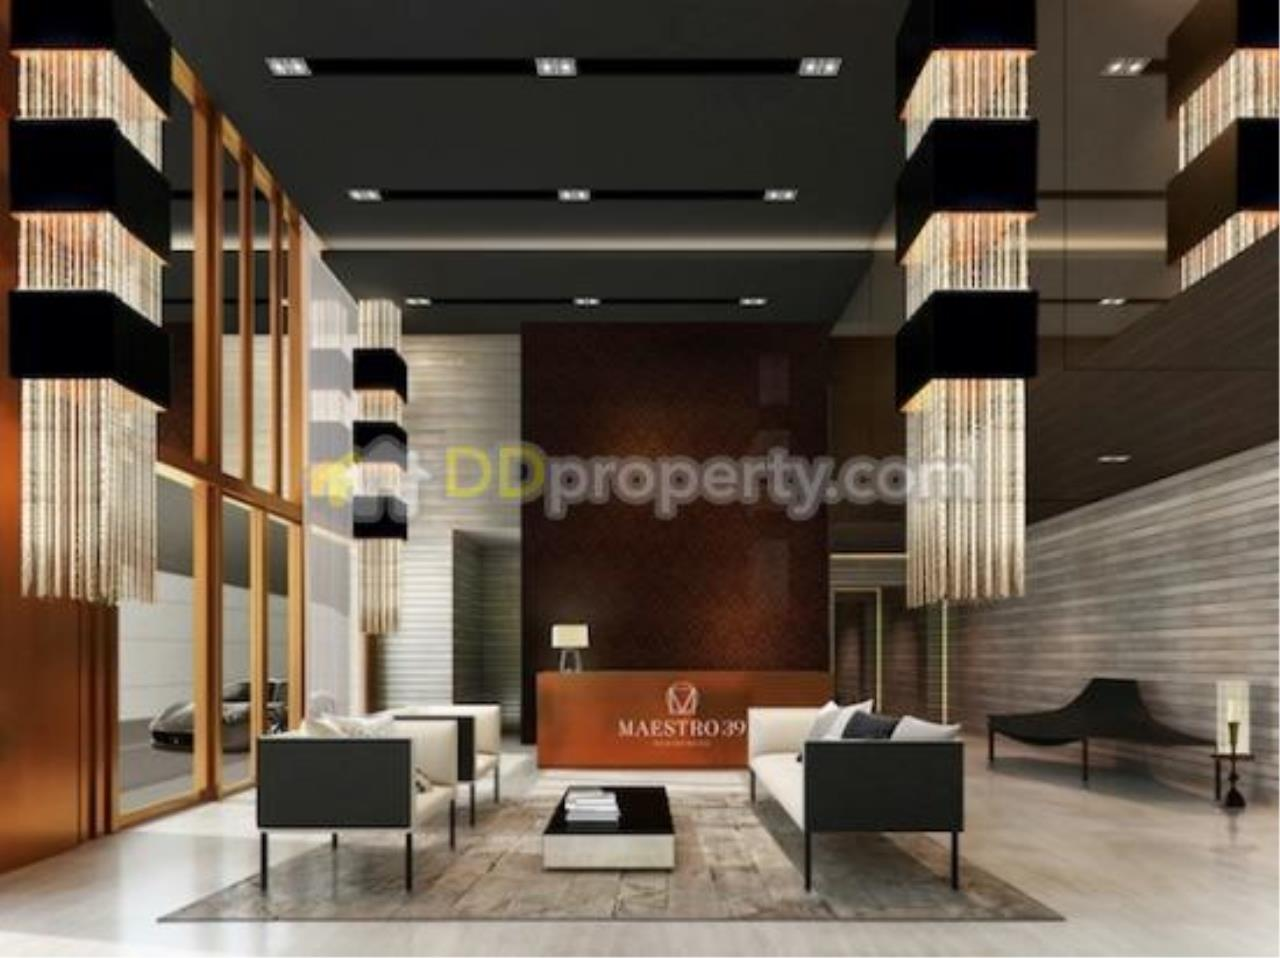 Thai Smart Property Agency's Maestro Condo 2 Bedrooms Sukhumvit 39 1